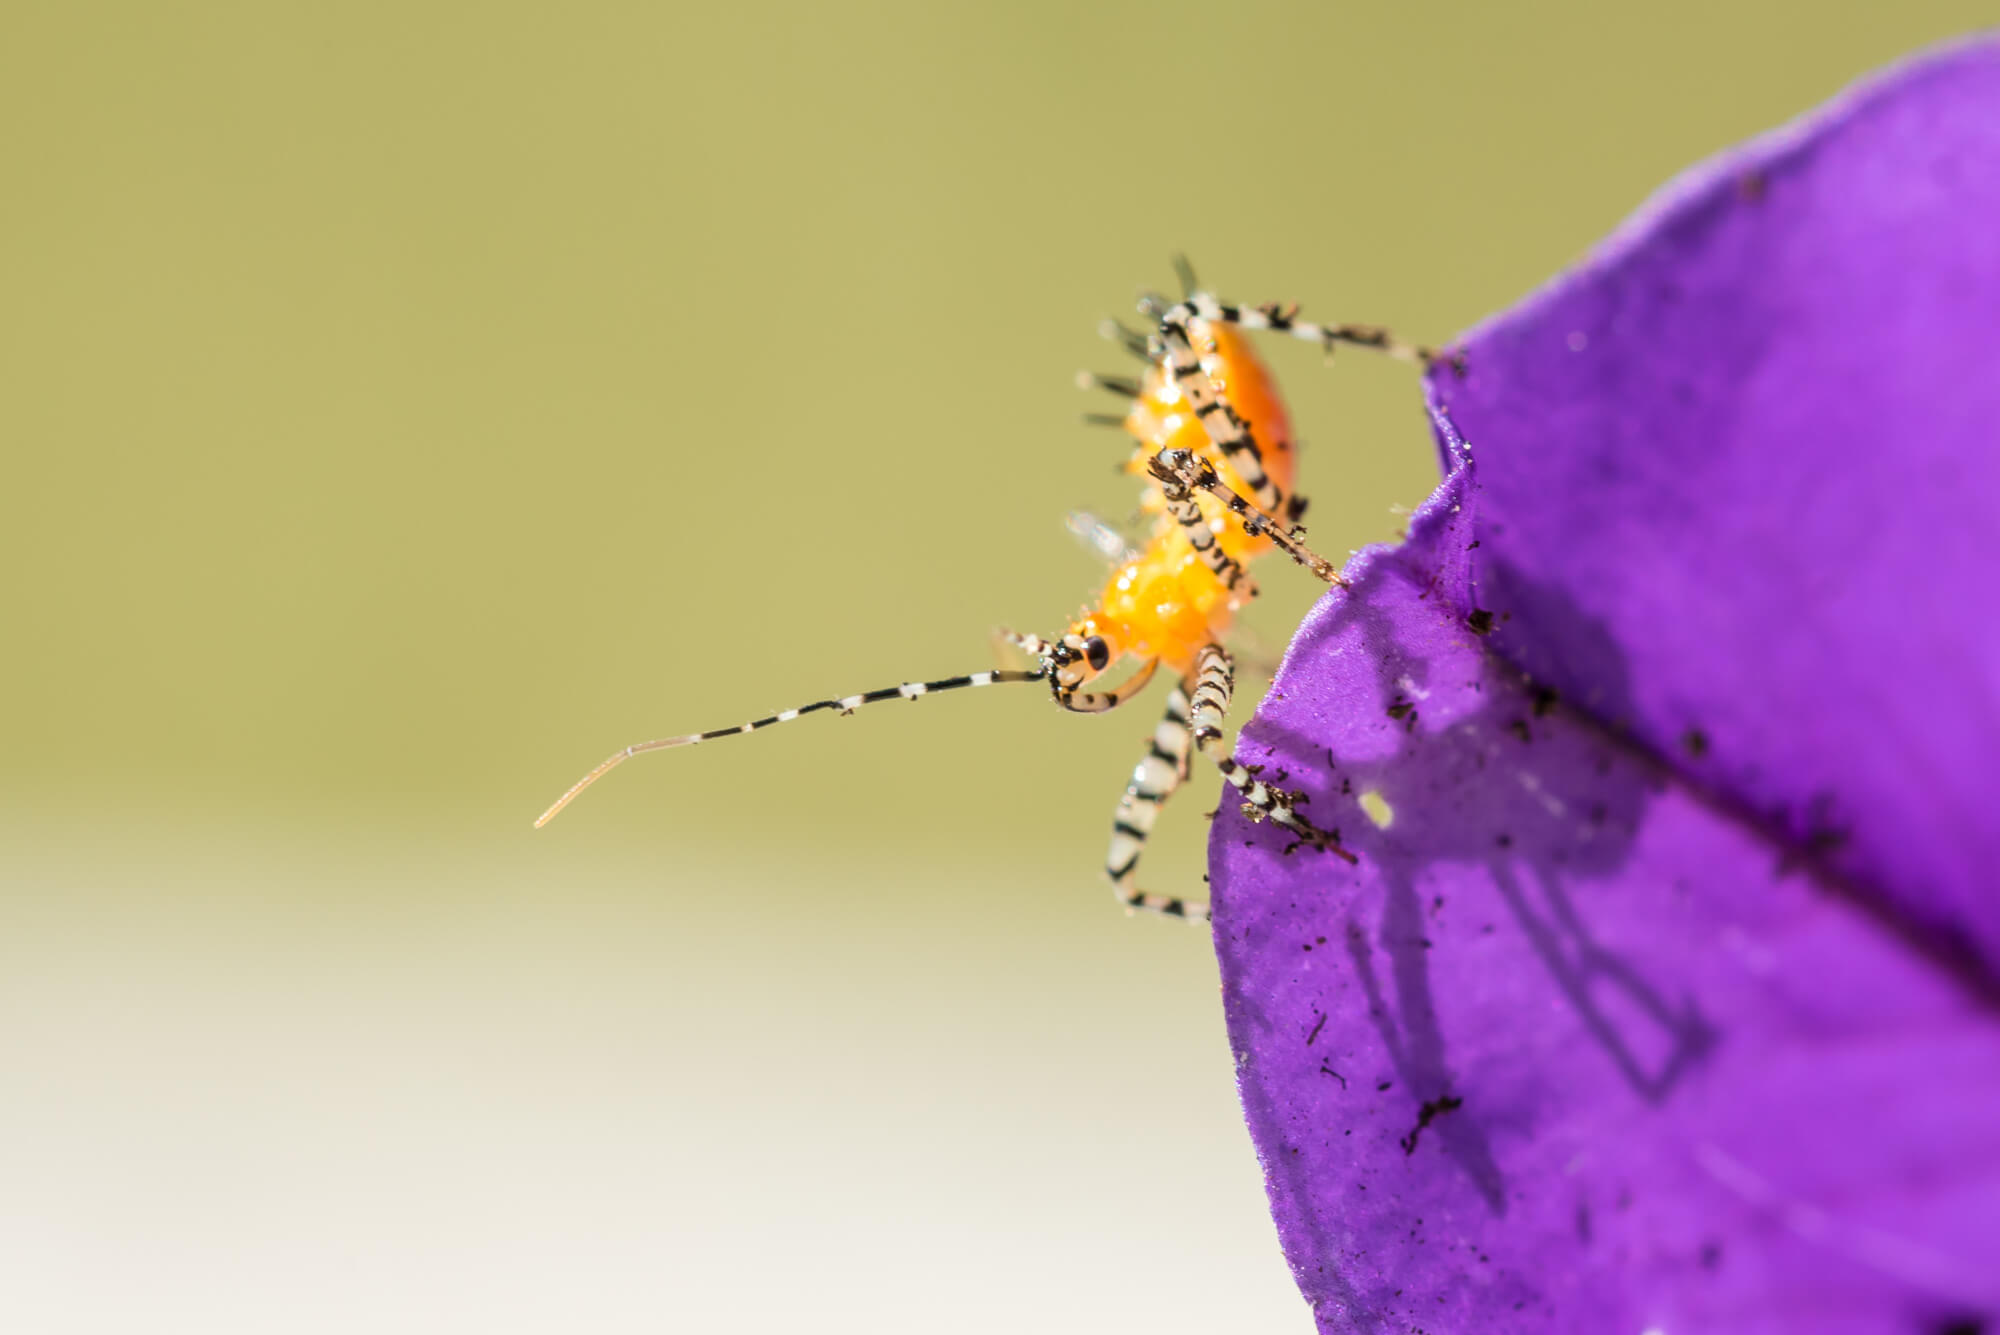 Sycamore Assassin Bug